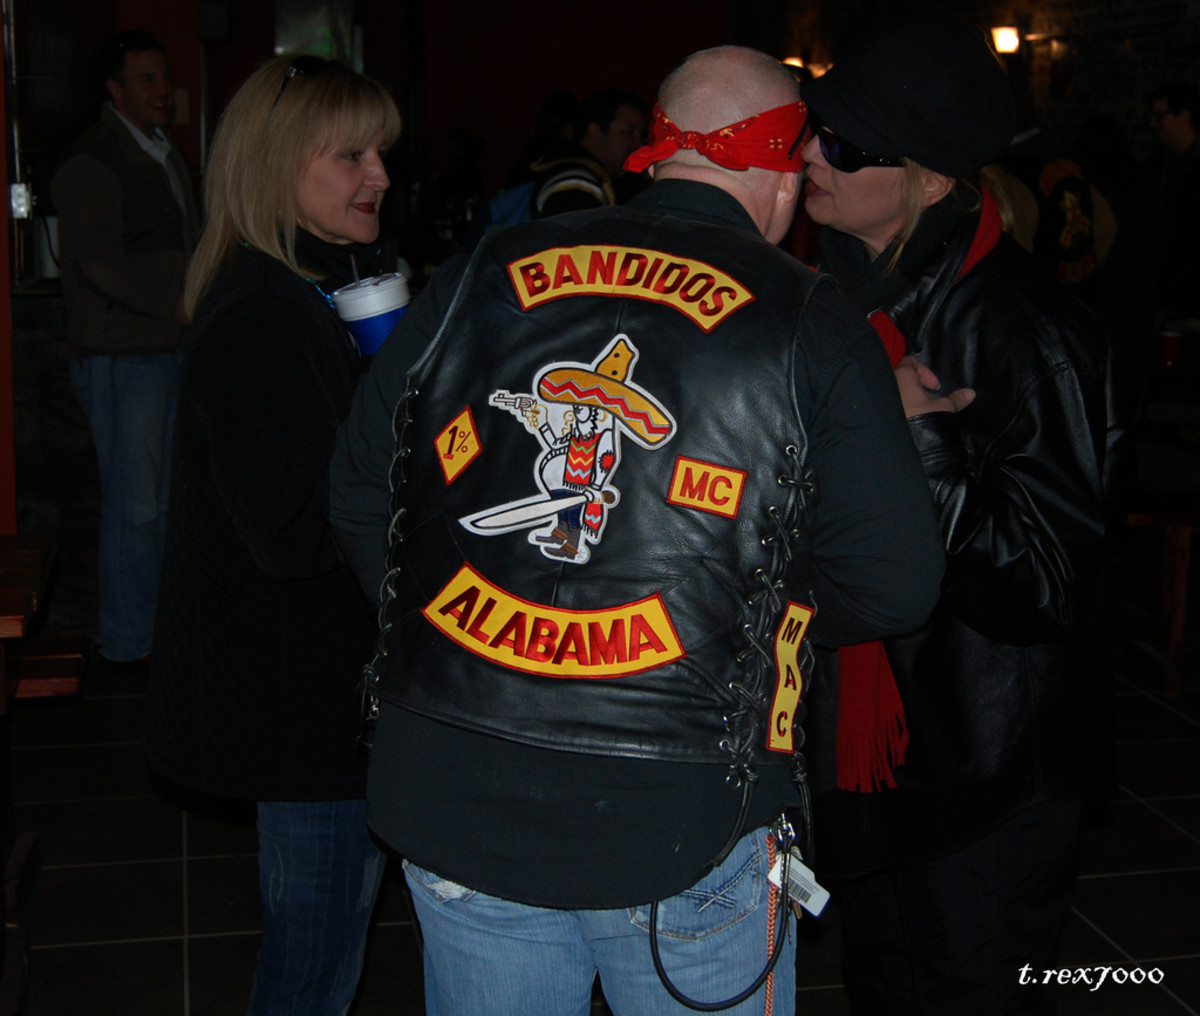 A member of the Bandidos Motorcycle Club's Alabama branch. (Photo: Tony/Flickr)